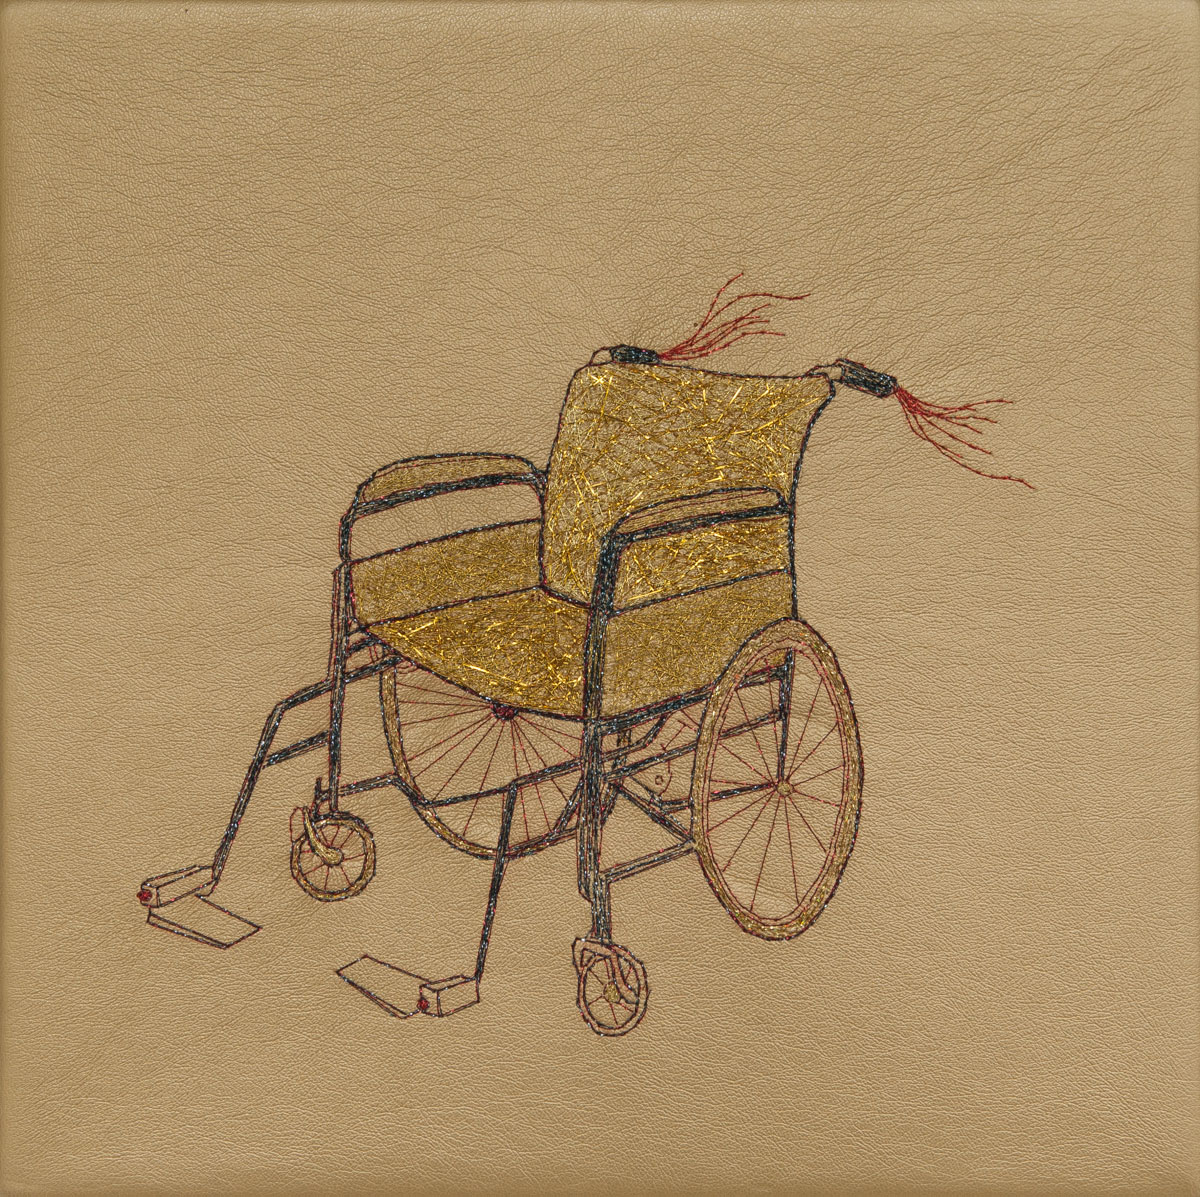 Chariot, hand stitching on gold vinyl, 10in, x 10in, 2013